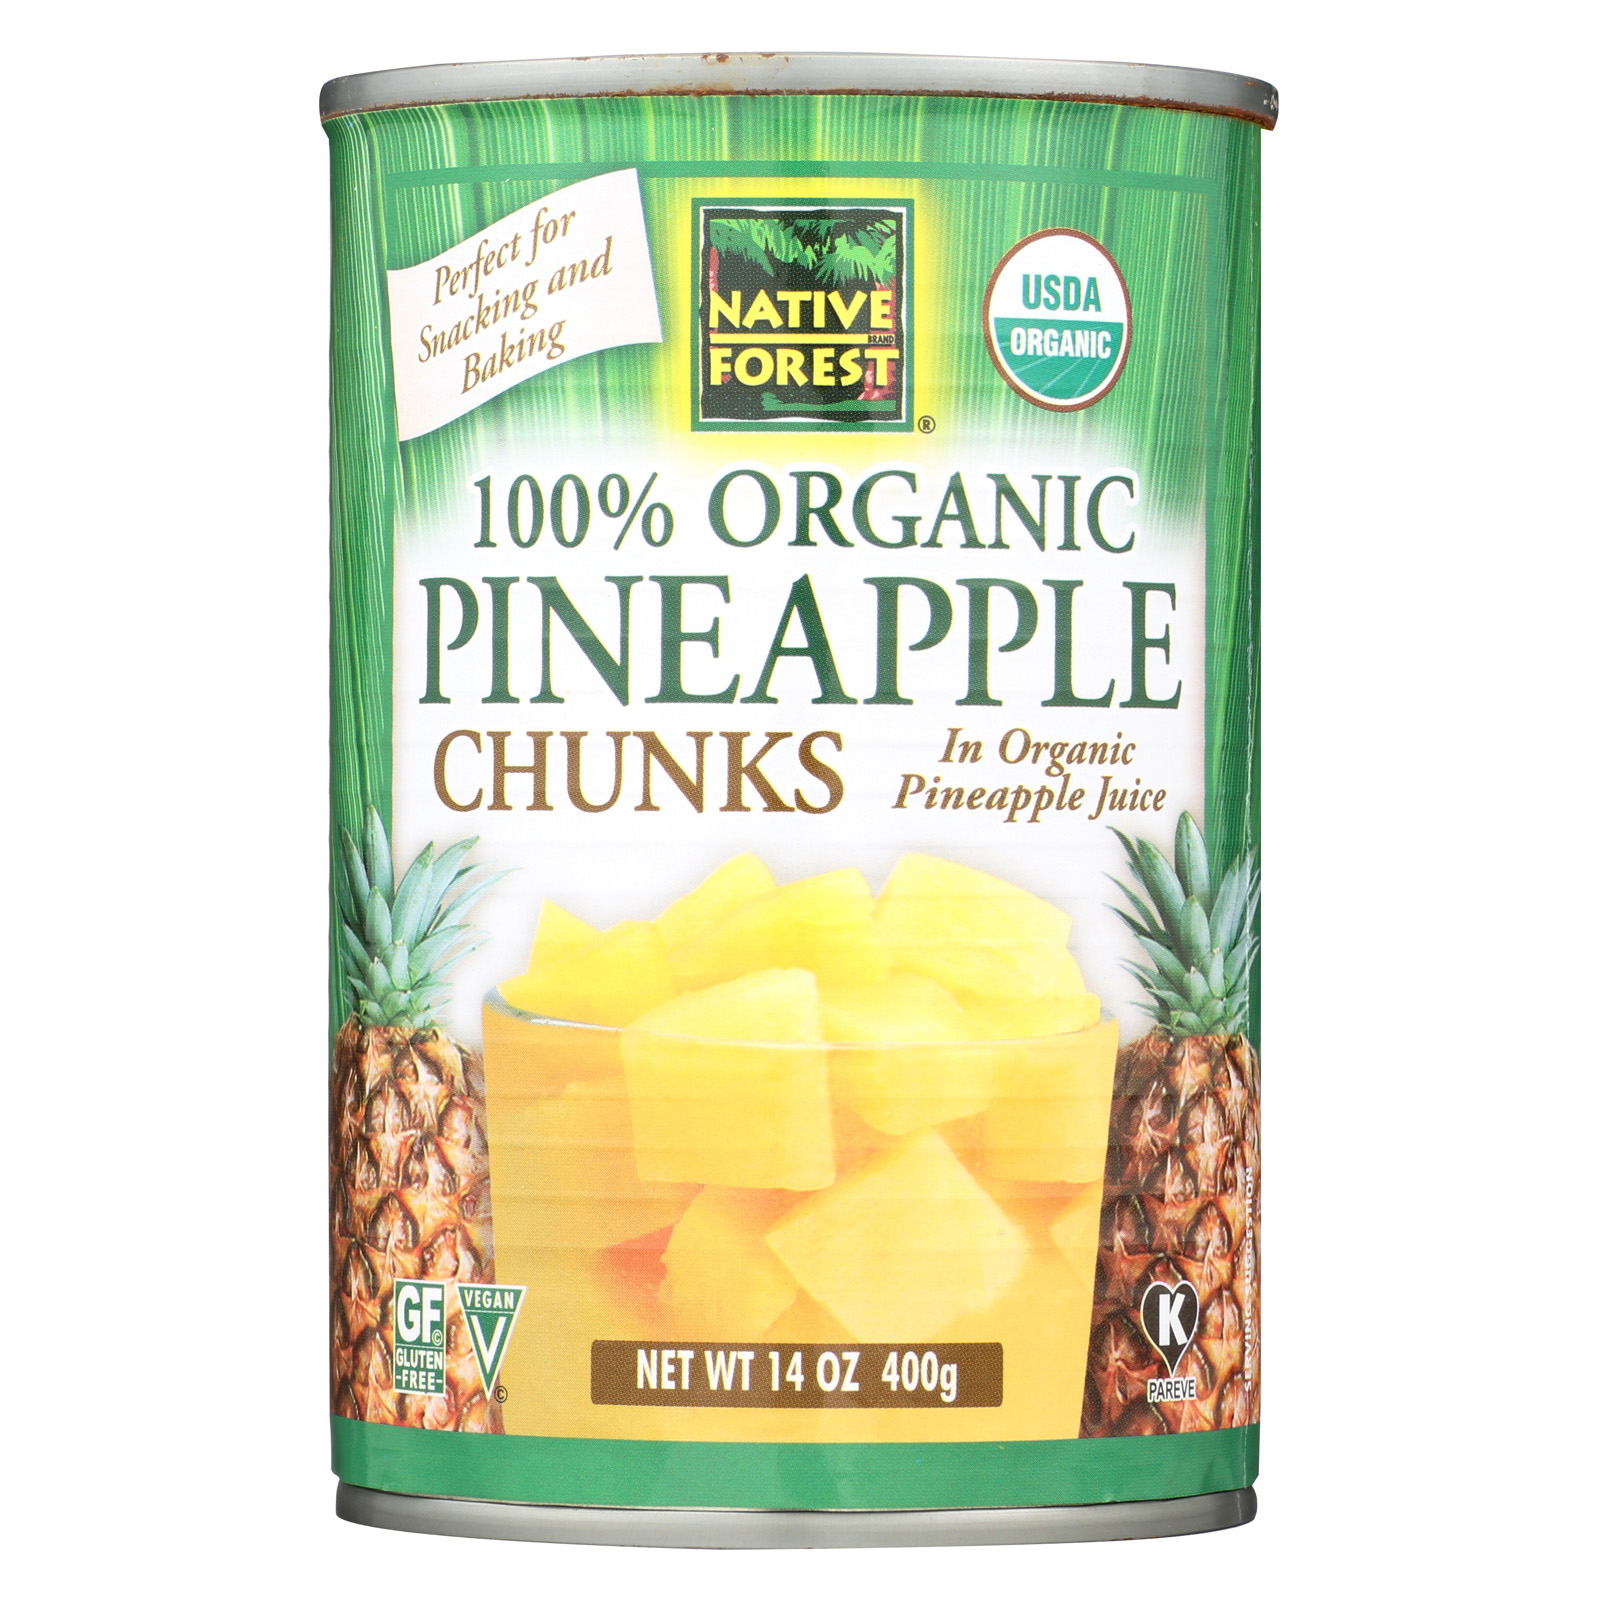 Native Forest Organic Chunks - Pineapple - Case of 6 - 14 oz.